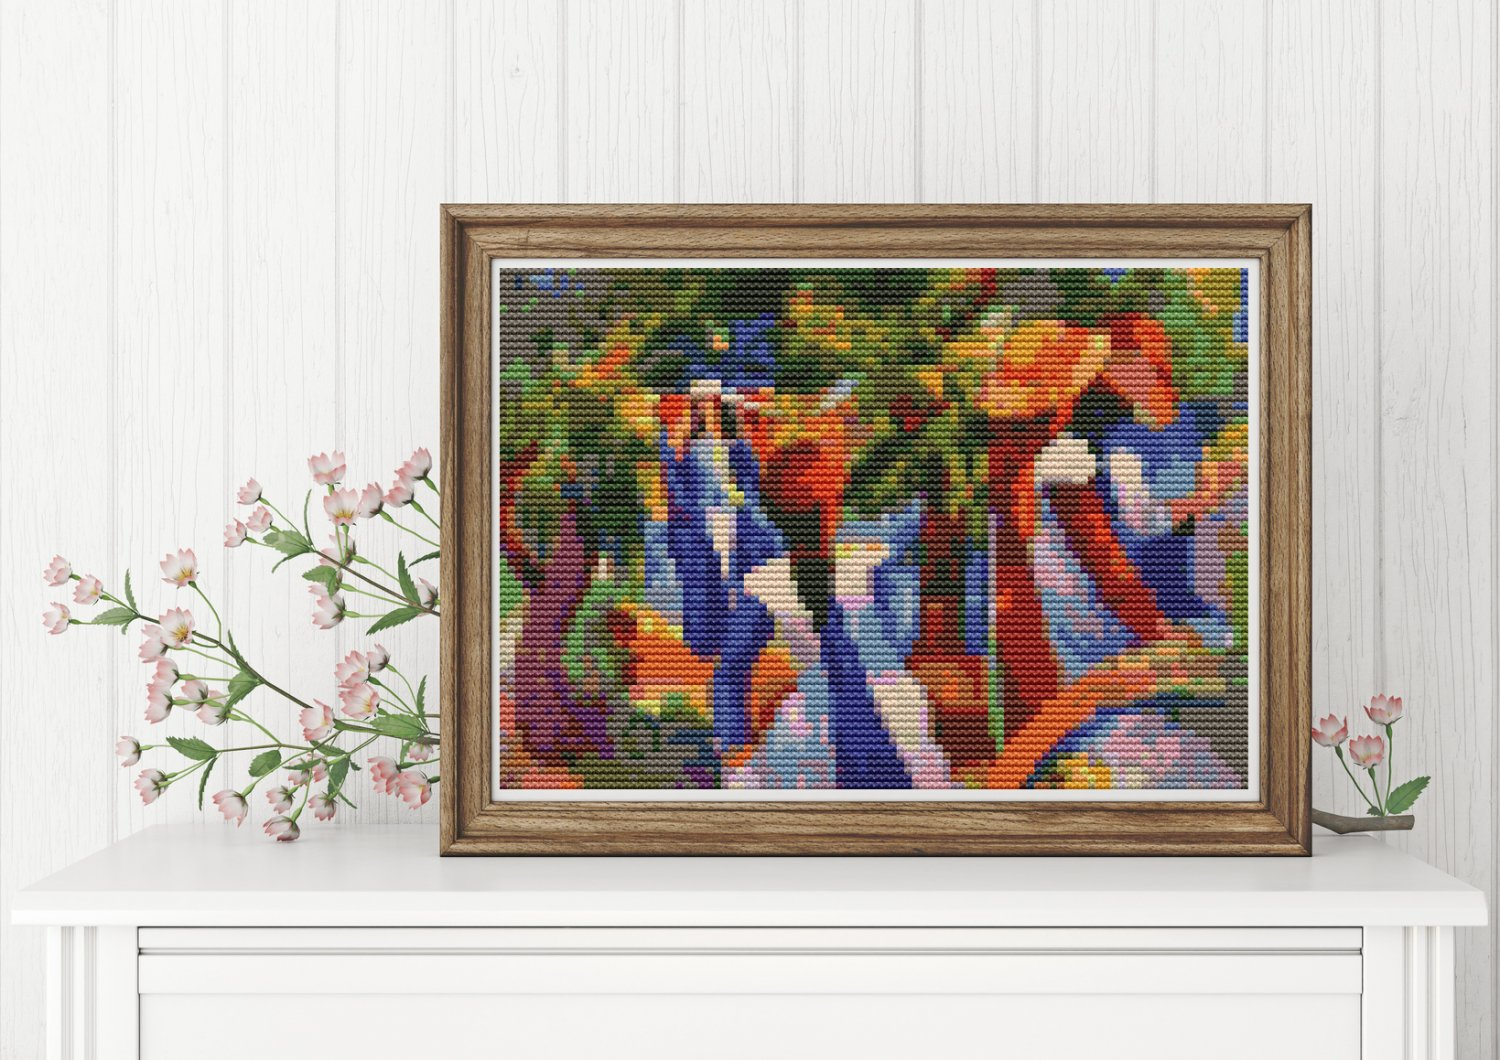 Girl Under the Trees Cross Stitch KIT by August Macke (MINI)